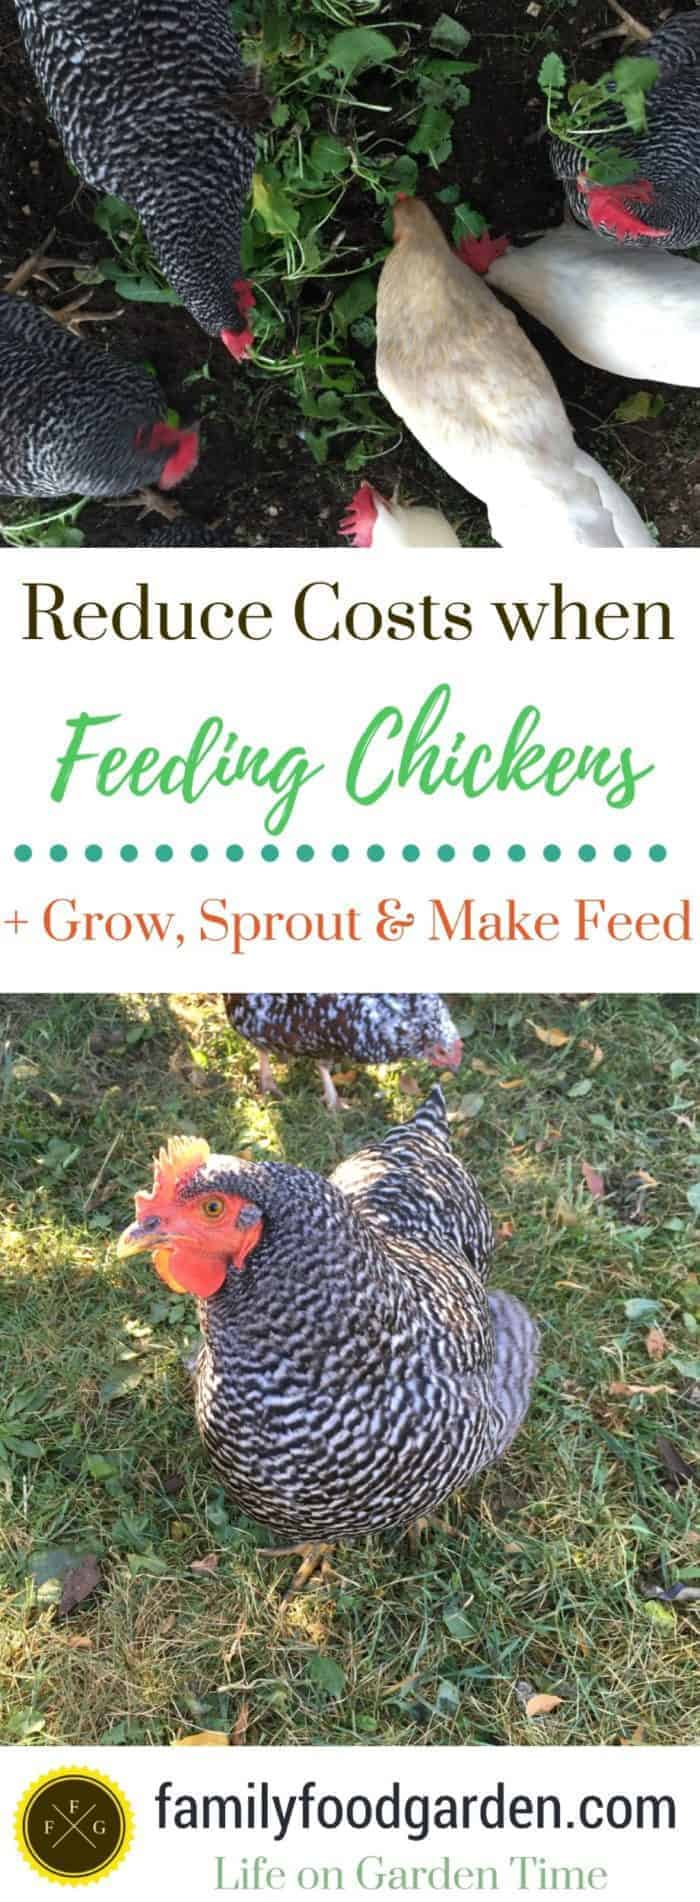 Here are some great ways to reduce chicken feeding costs + tips on how to grow your own grains and chicken fodder, make homemade chicken feed & more!